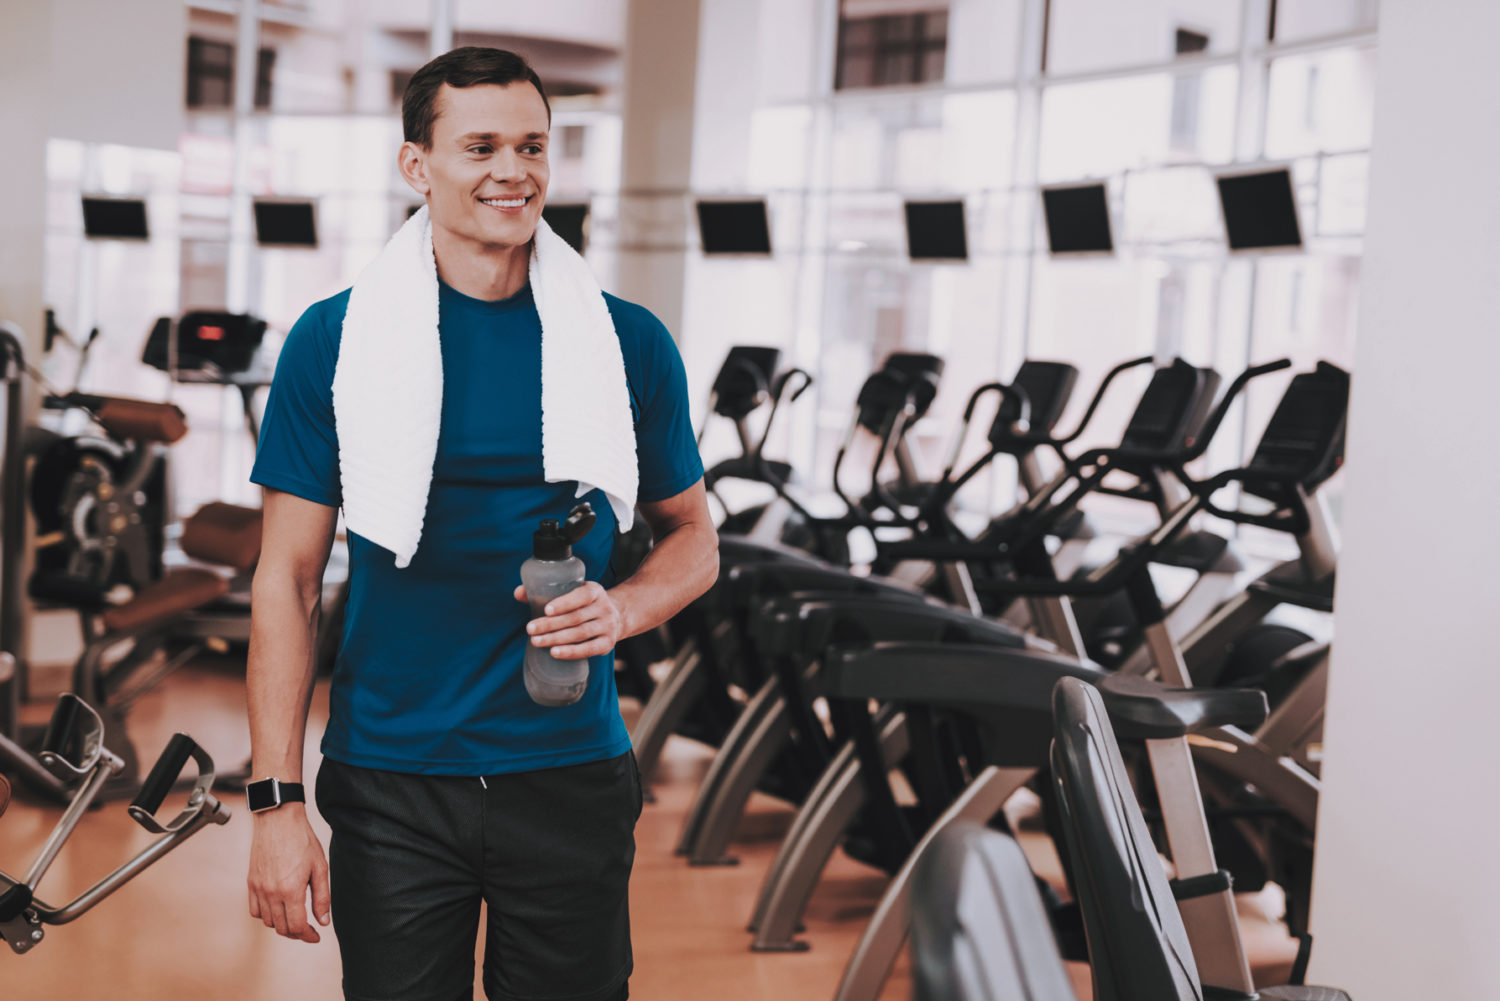 Man Visiting a Hotel Fitness Center